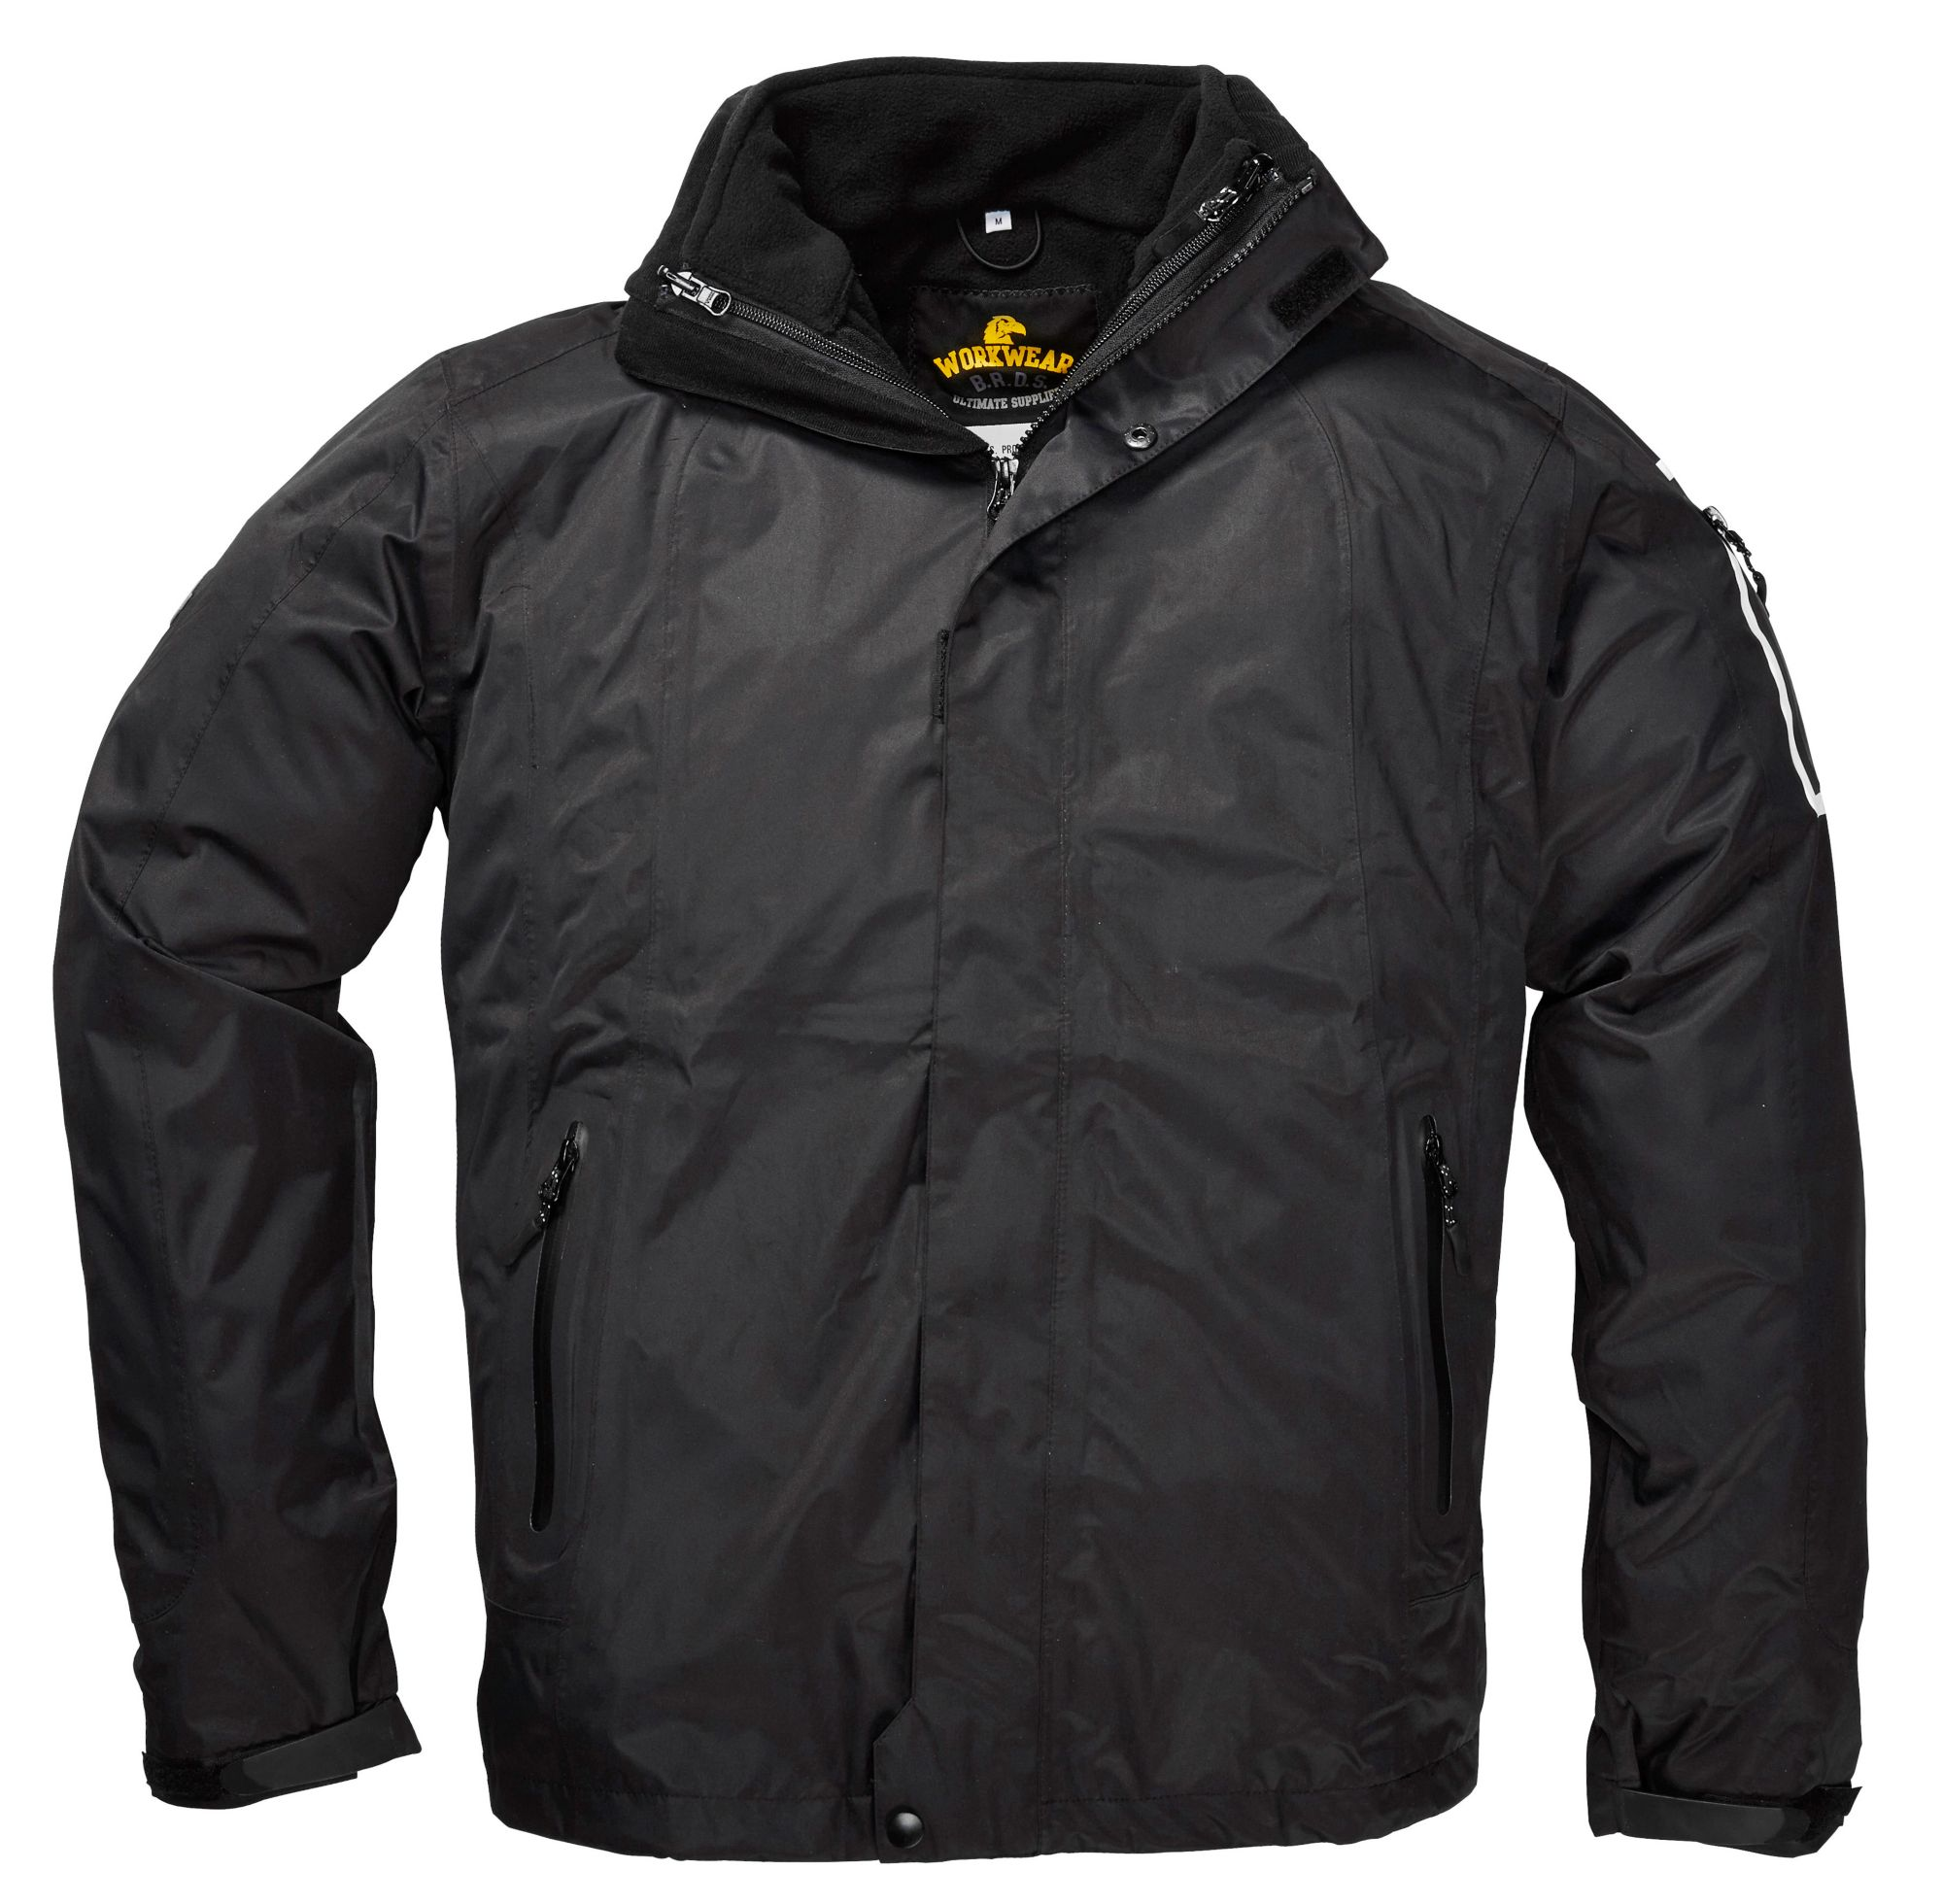 BRDS WORKWEAR B.R.D.S. Workwear 2-in-1-Jacke »Workwear«